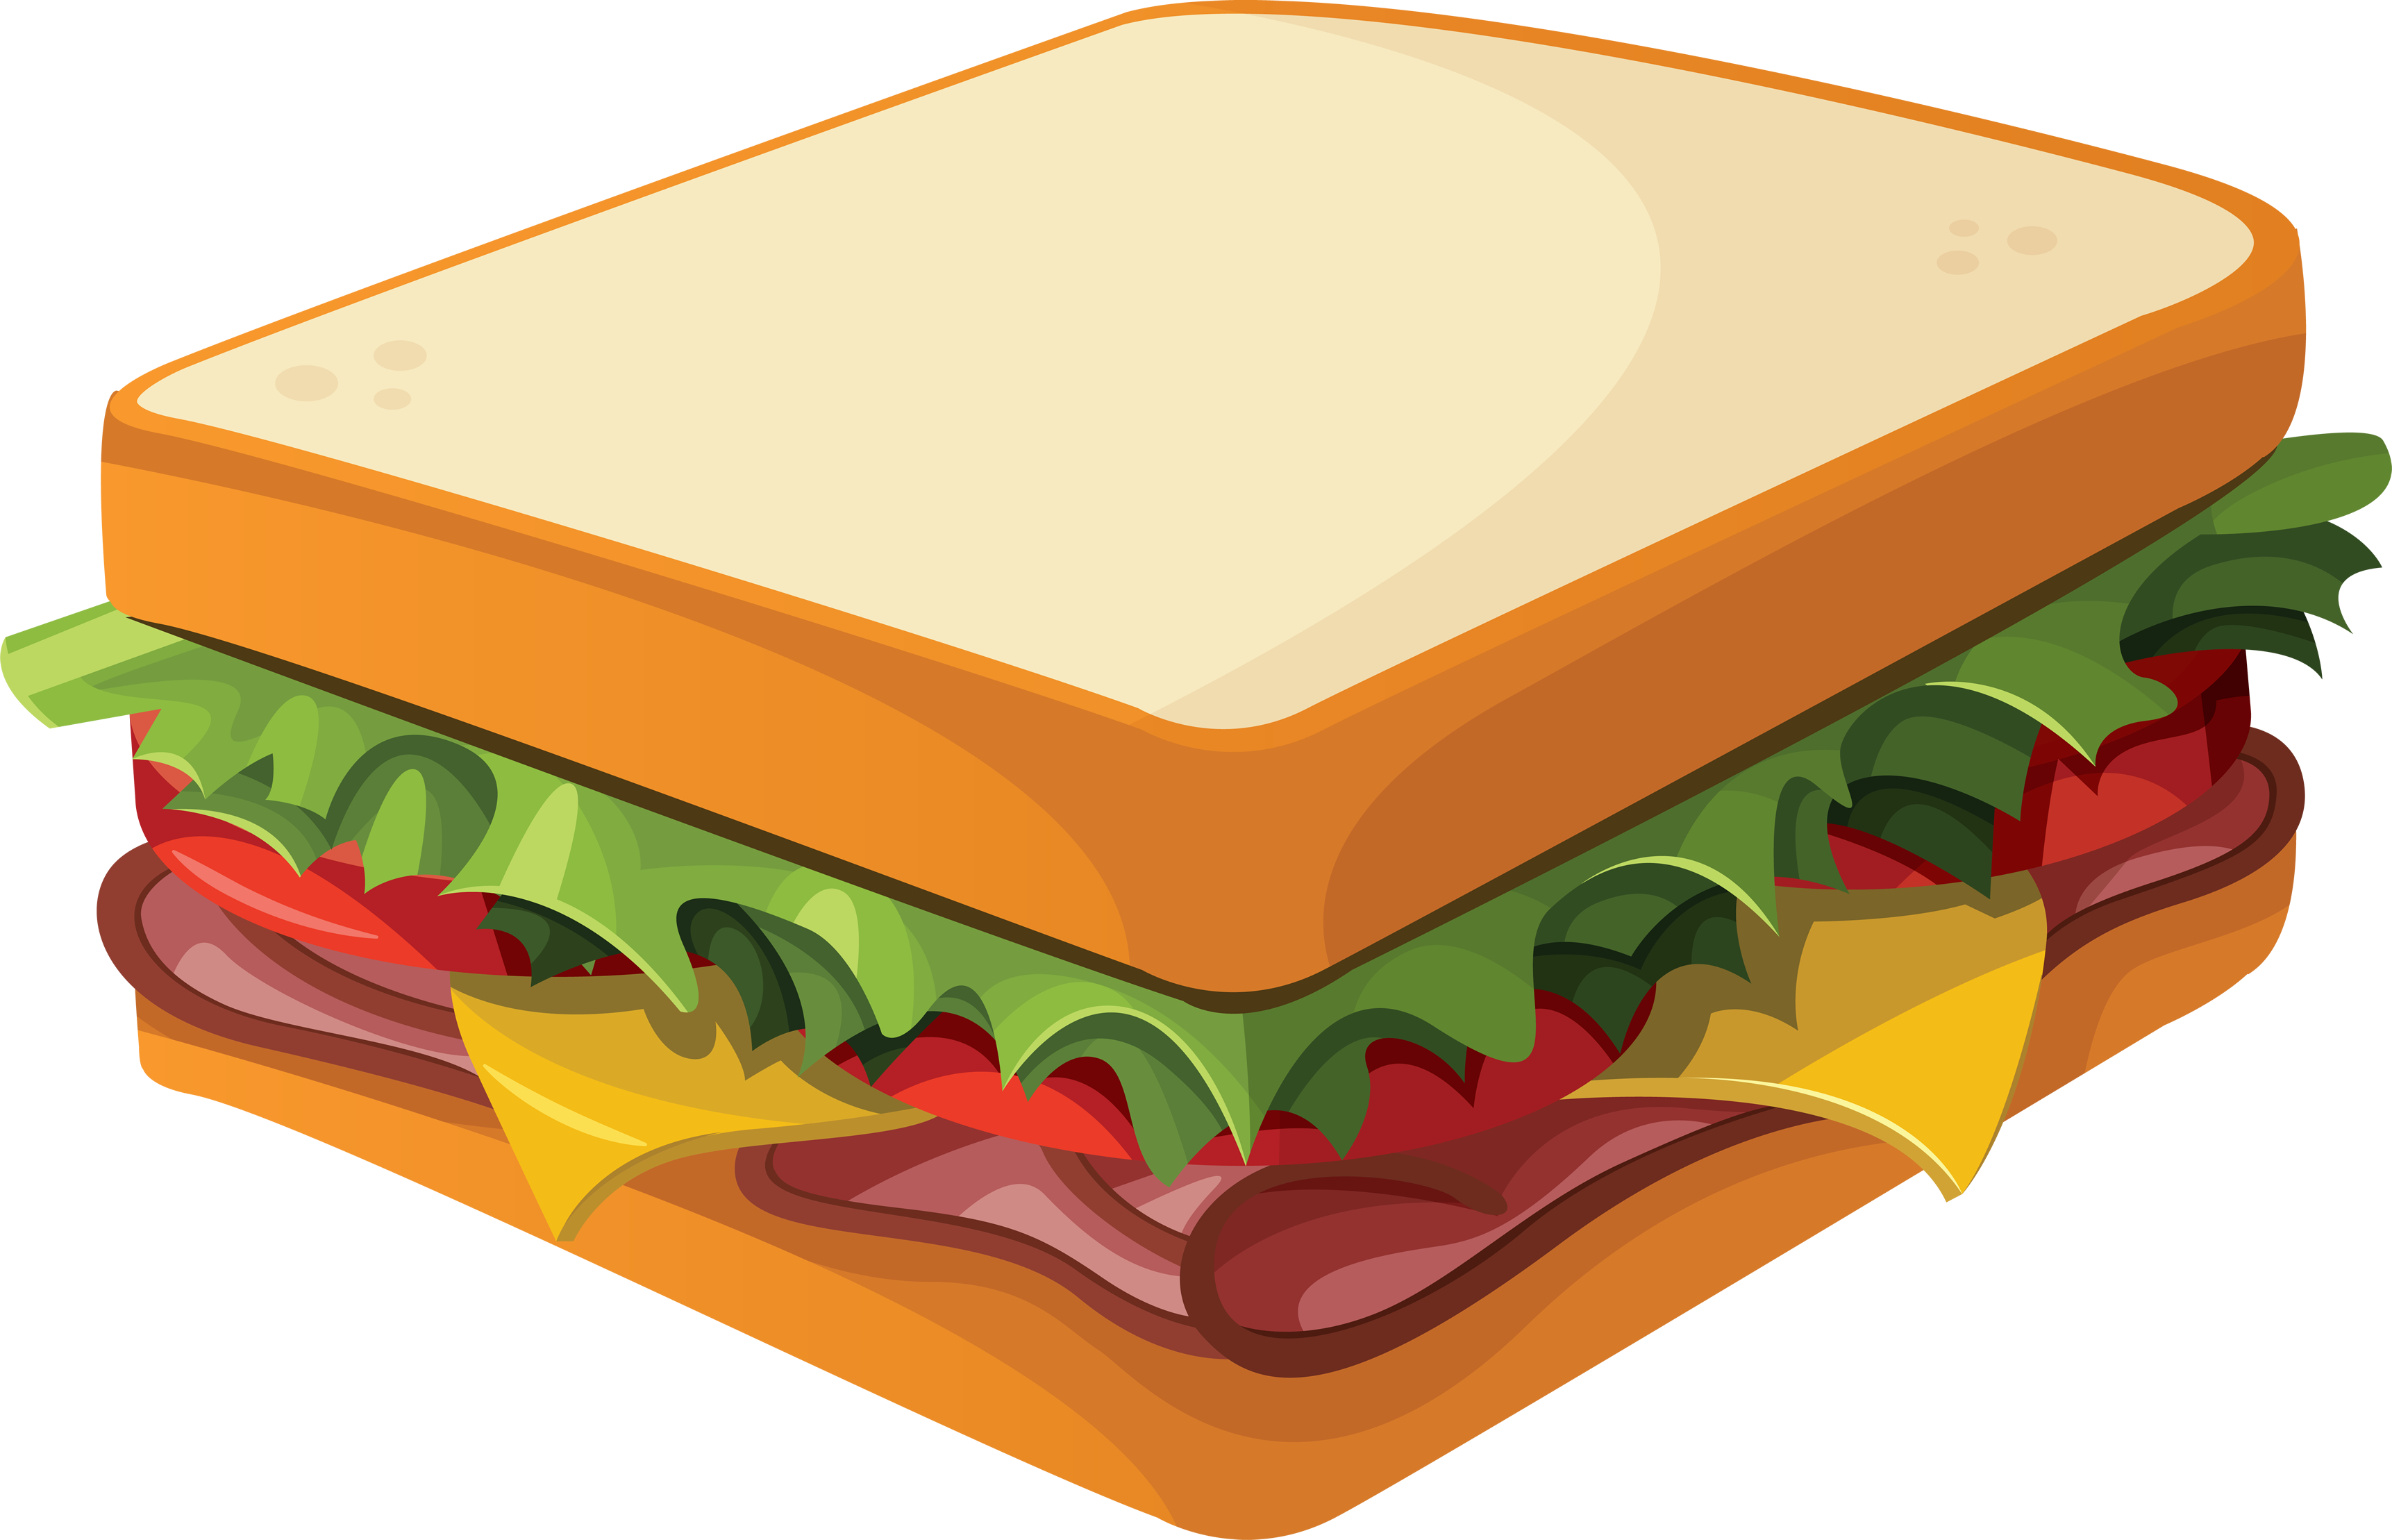 Clip Art Breakfast Sandwich Clipart - Clipart Kid